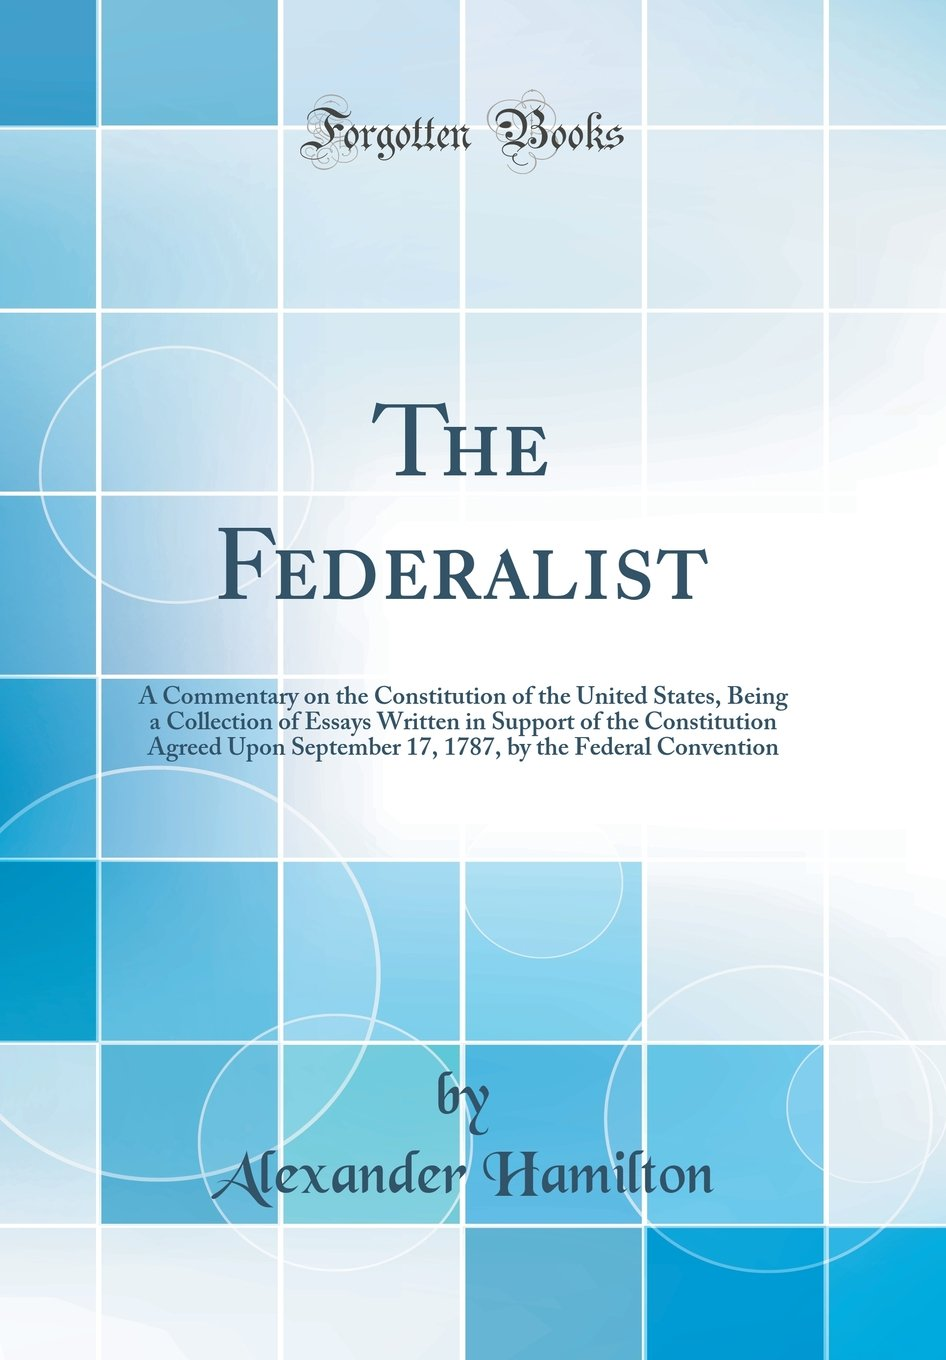 The Federalist: A Commentary on the Constitution of the United States, Being a Collection of Essays Written in Support of the Constitution Agreed Upon ... by the Federal Convention (Classic Reprint) ebook